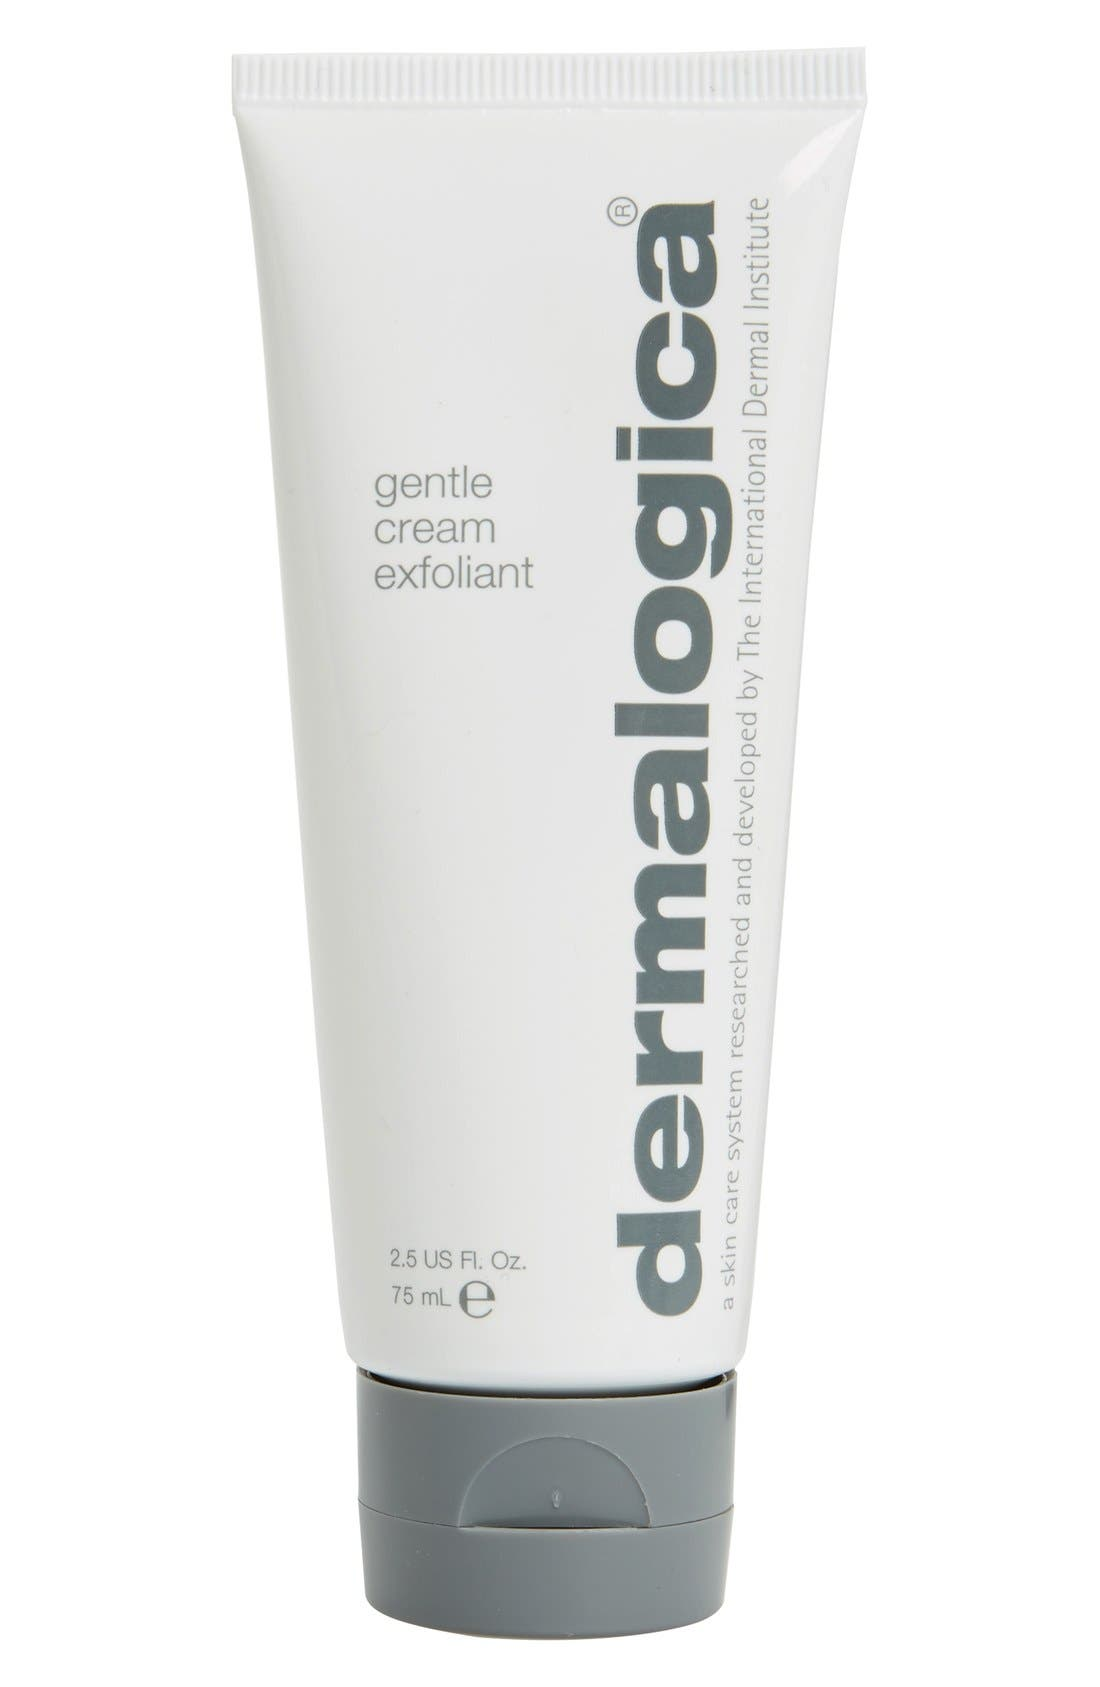 dermalogica® Gentle Cream Exfoliant